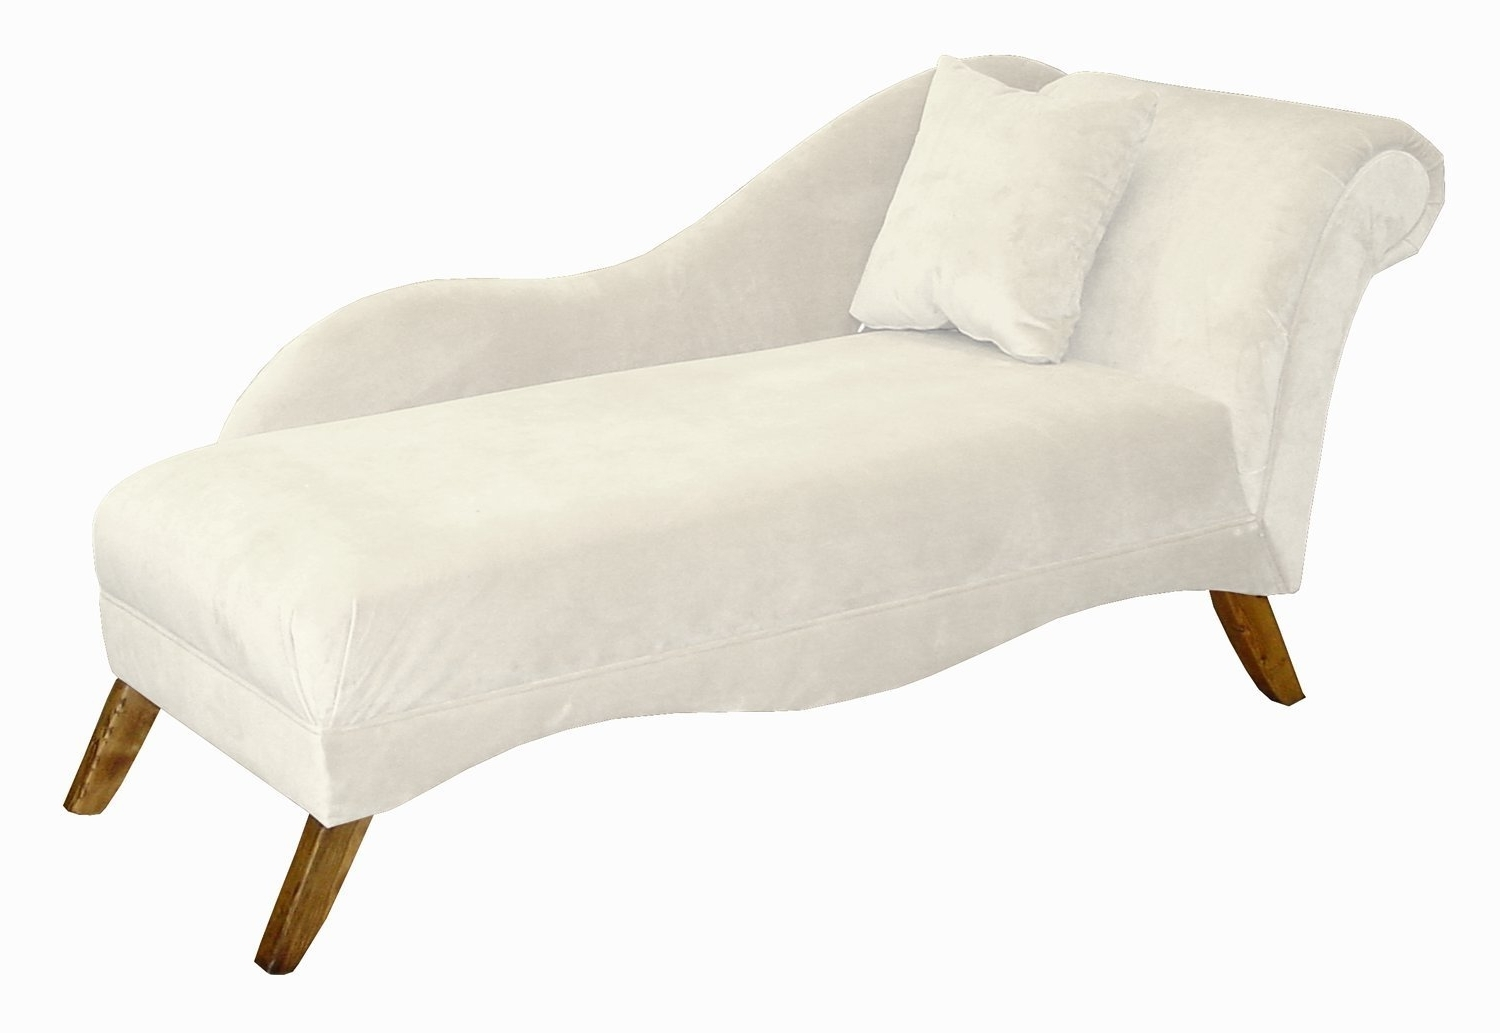 Amazon: Isabella Single Arm Chaise Loungeskyline Furniture Pertaining To Current Chaise Lounge Chairs With Two Arms (View 1 of 15)